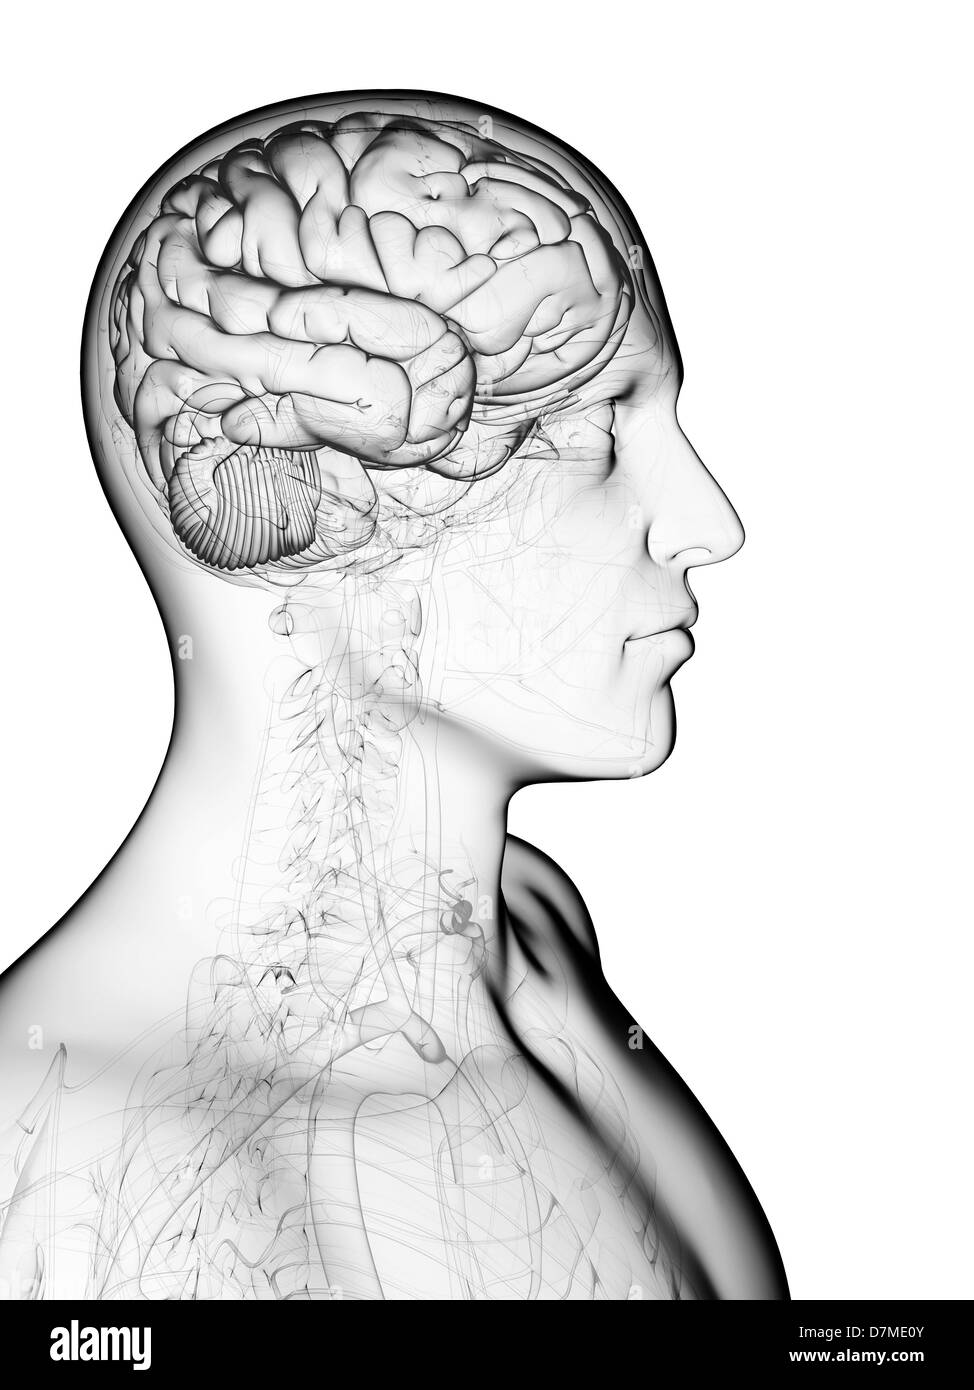 Cerveau masculin, artwork Photo Stock